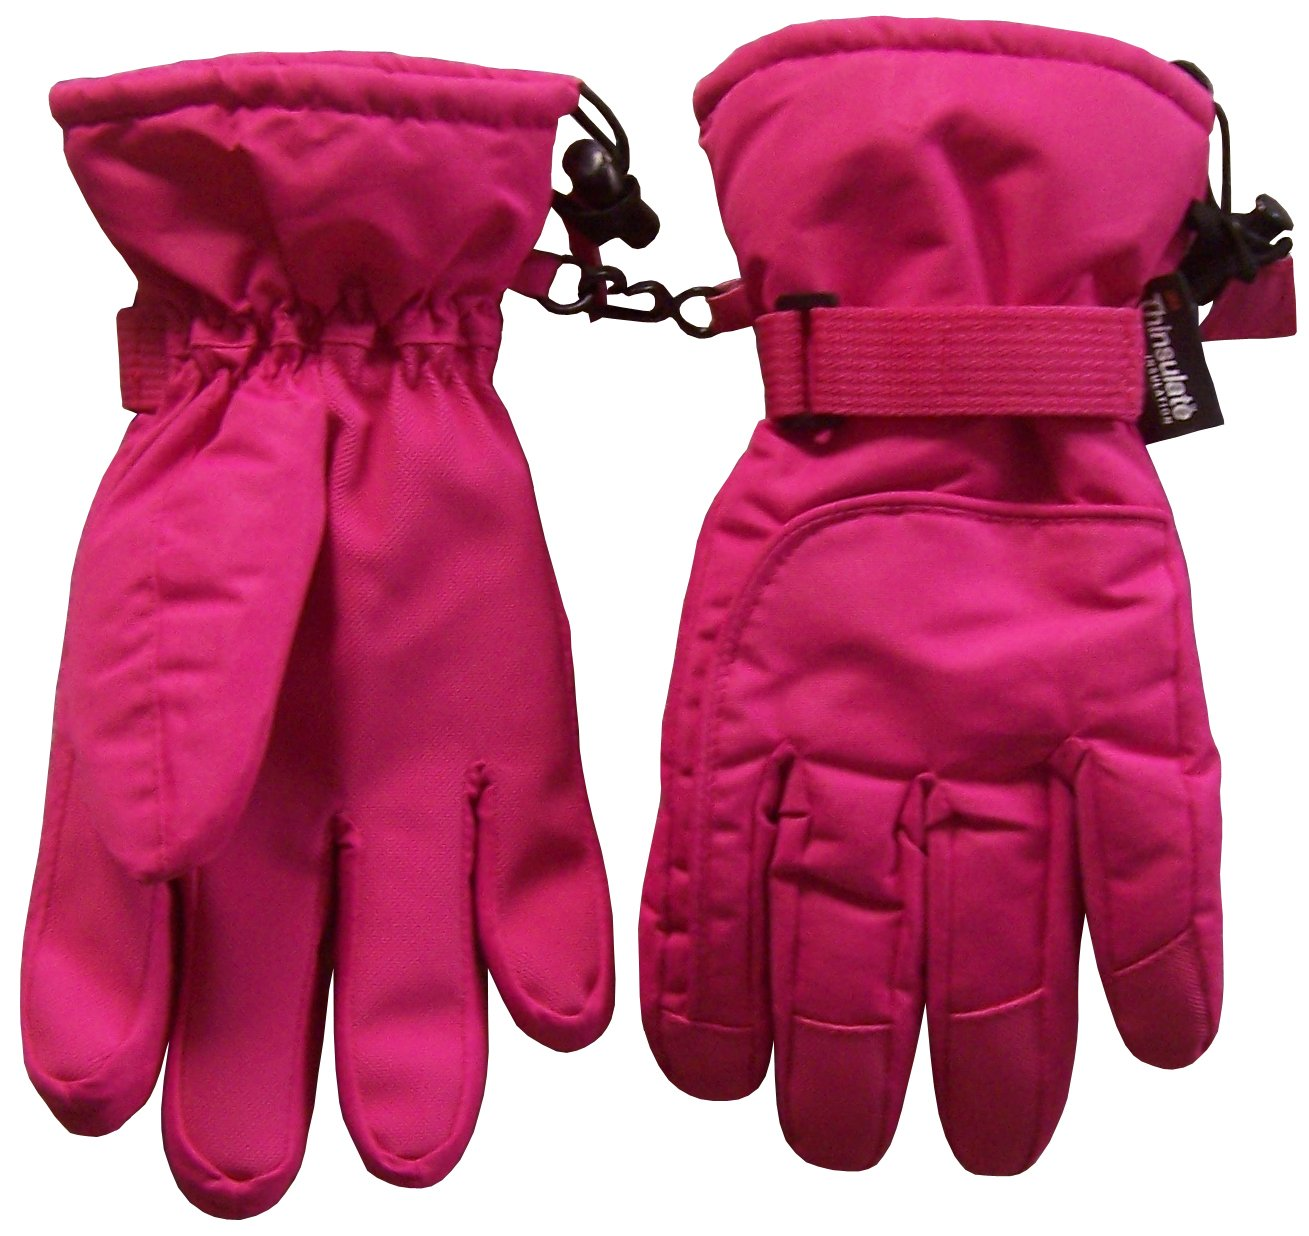 NICE CAPS Kids Extreme Cold Weather 80 Gram Thinsulate and Waterproof Ski Snow Winter Gloves - Fits Boys Girls Toddler Childrens Youth Child Sizes